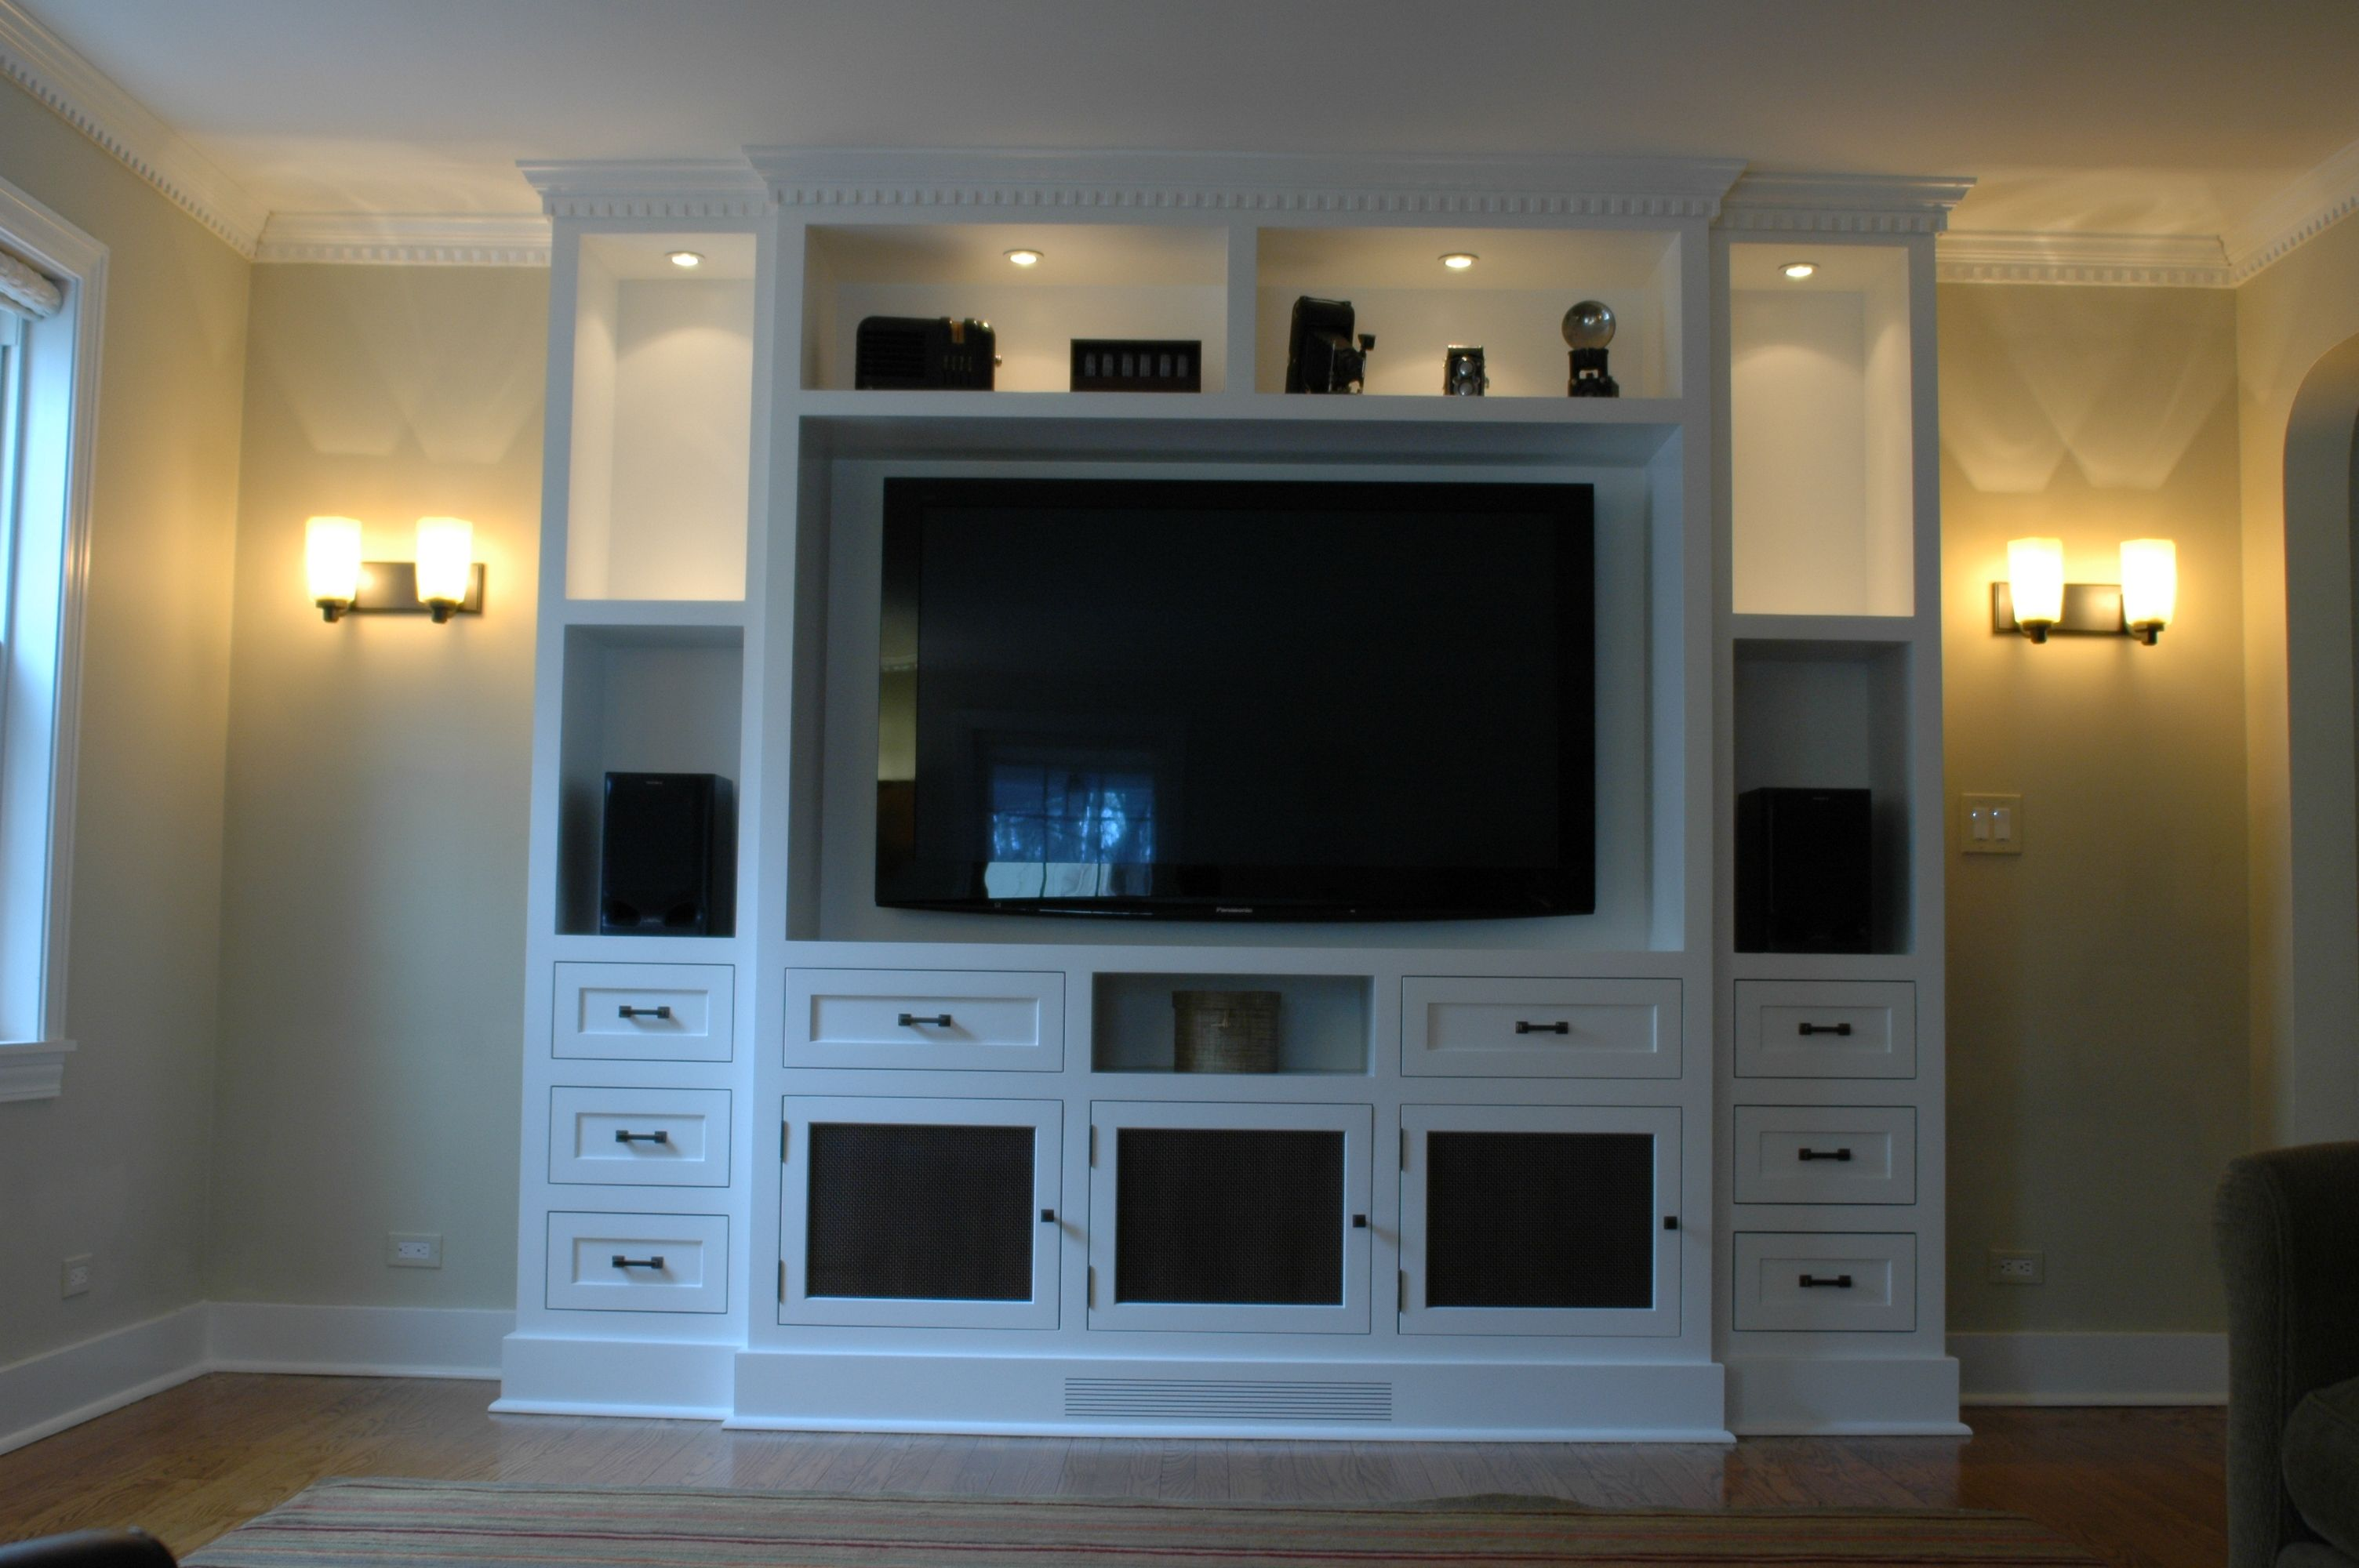 Custum Tv Built In | Customer Images Amazing Pictures